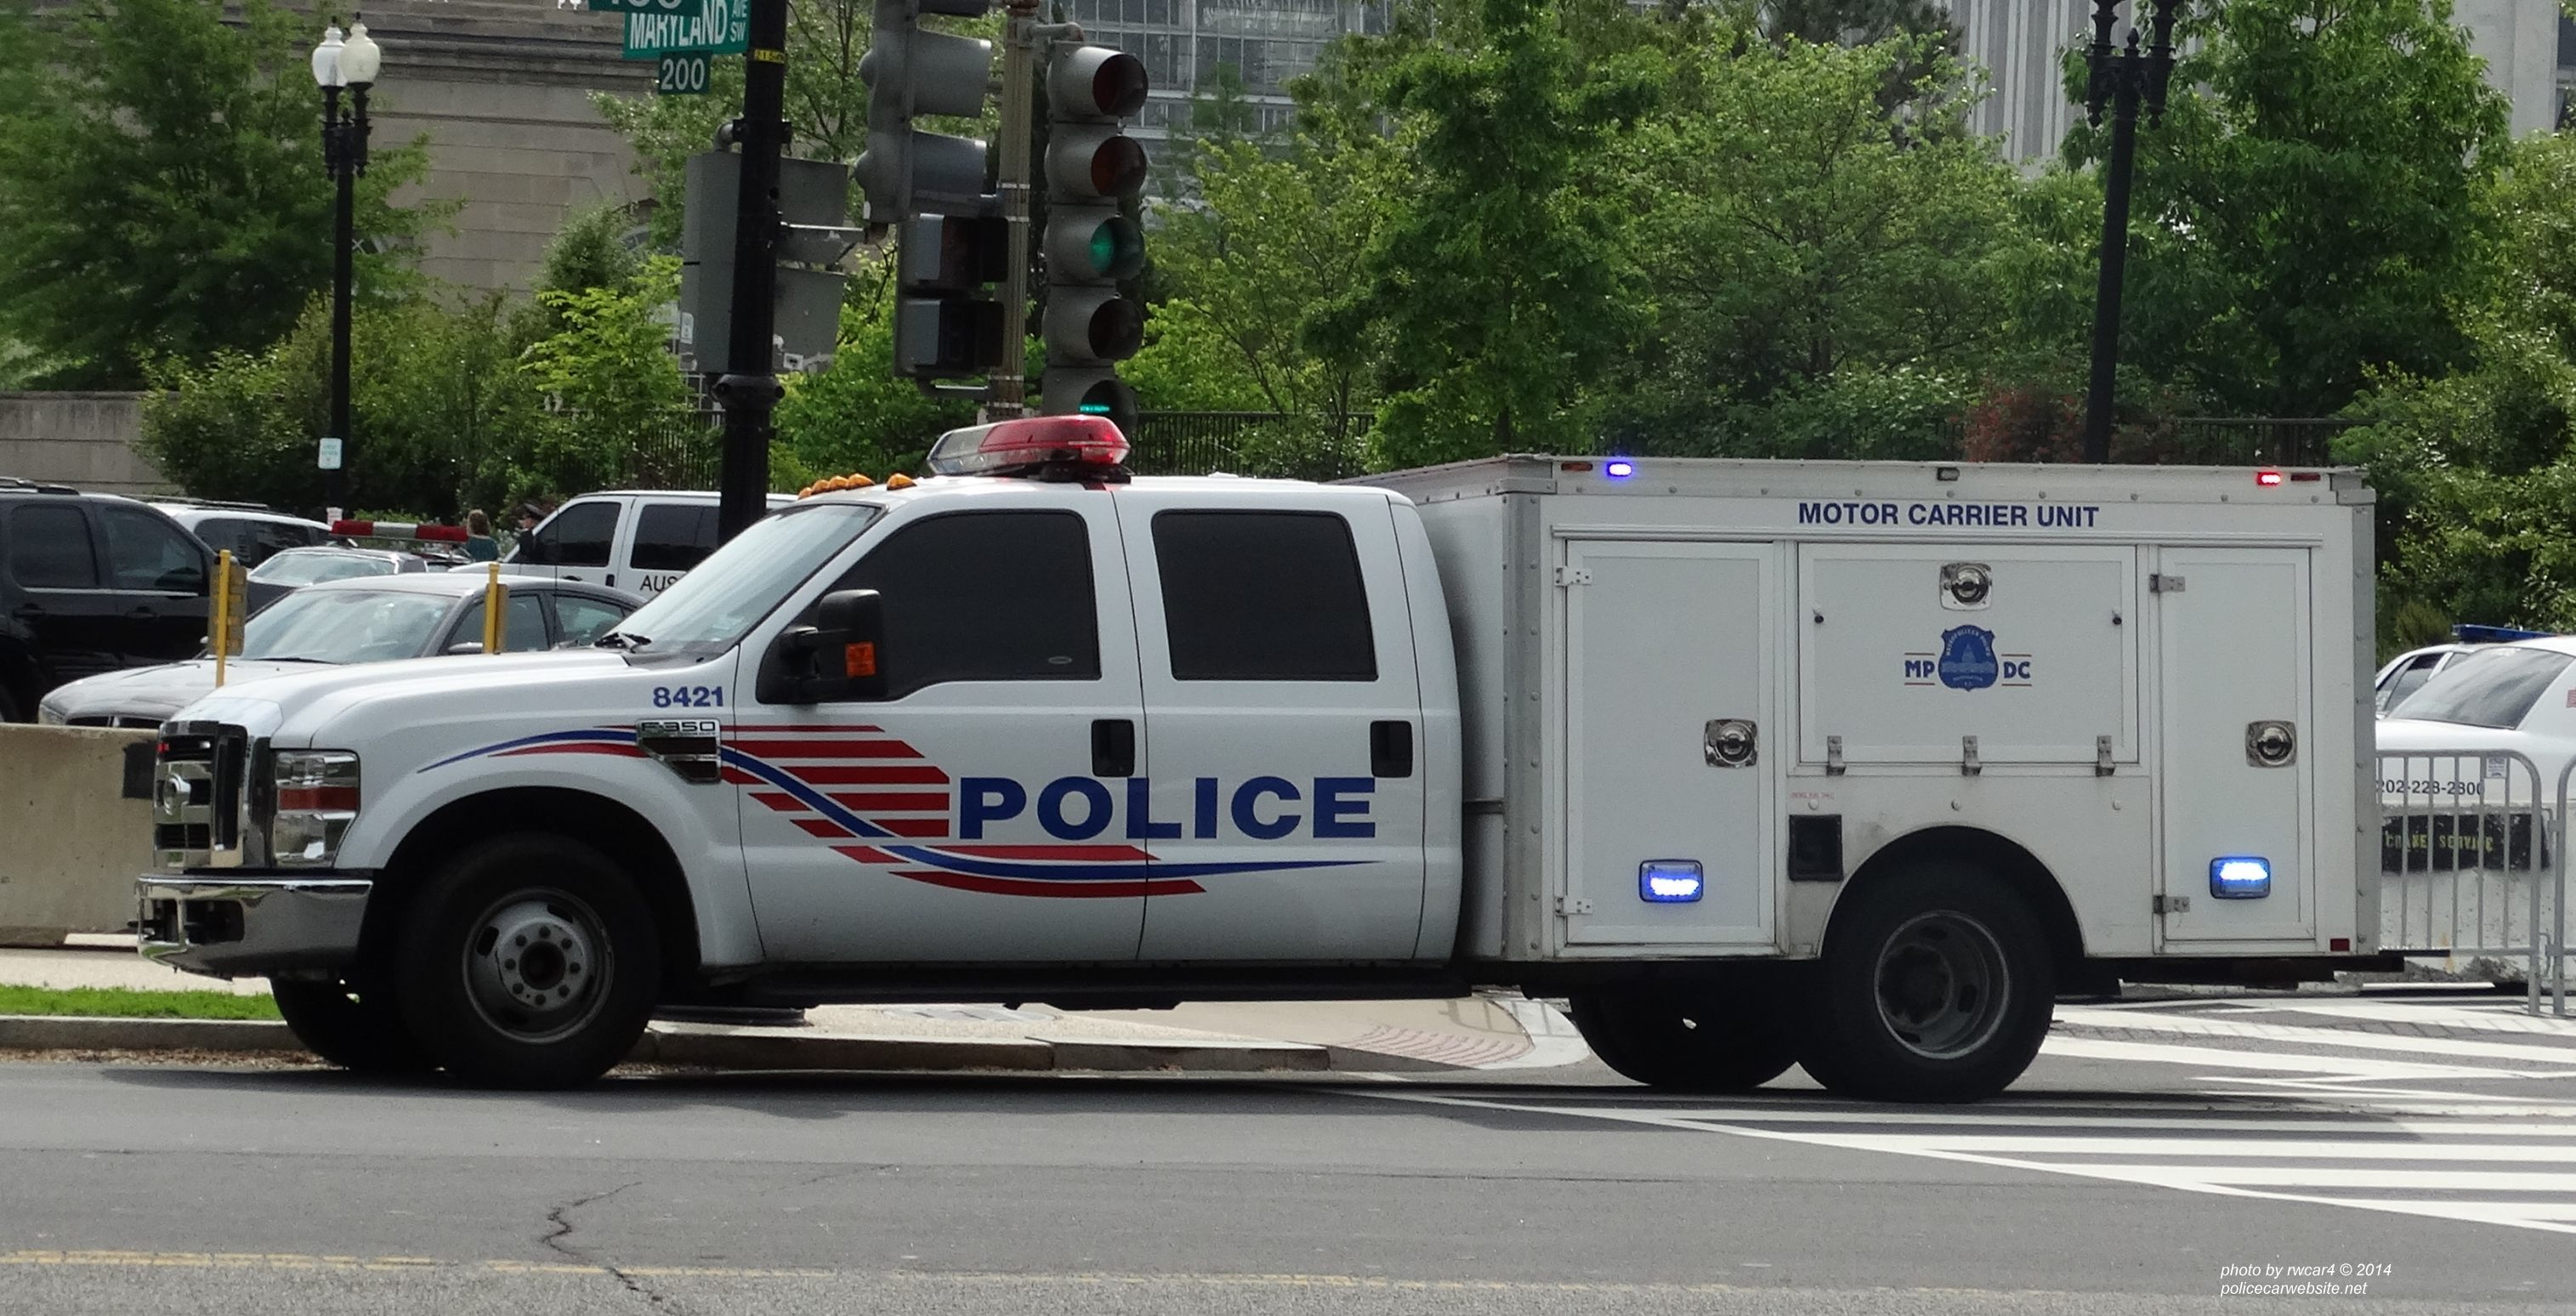 Police car website for Washington dc department of motor vehicles